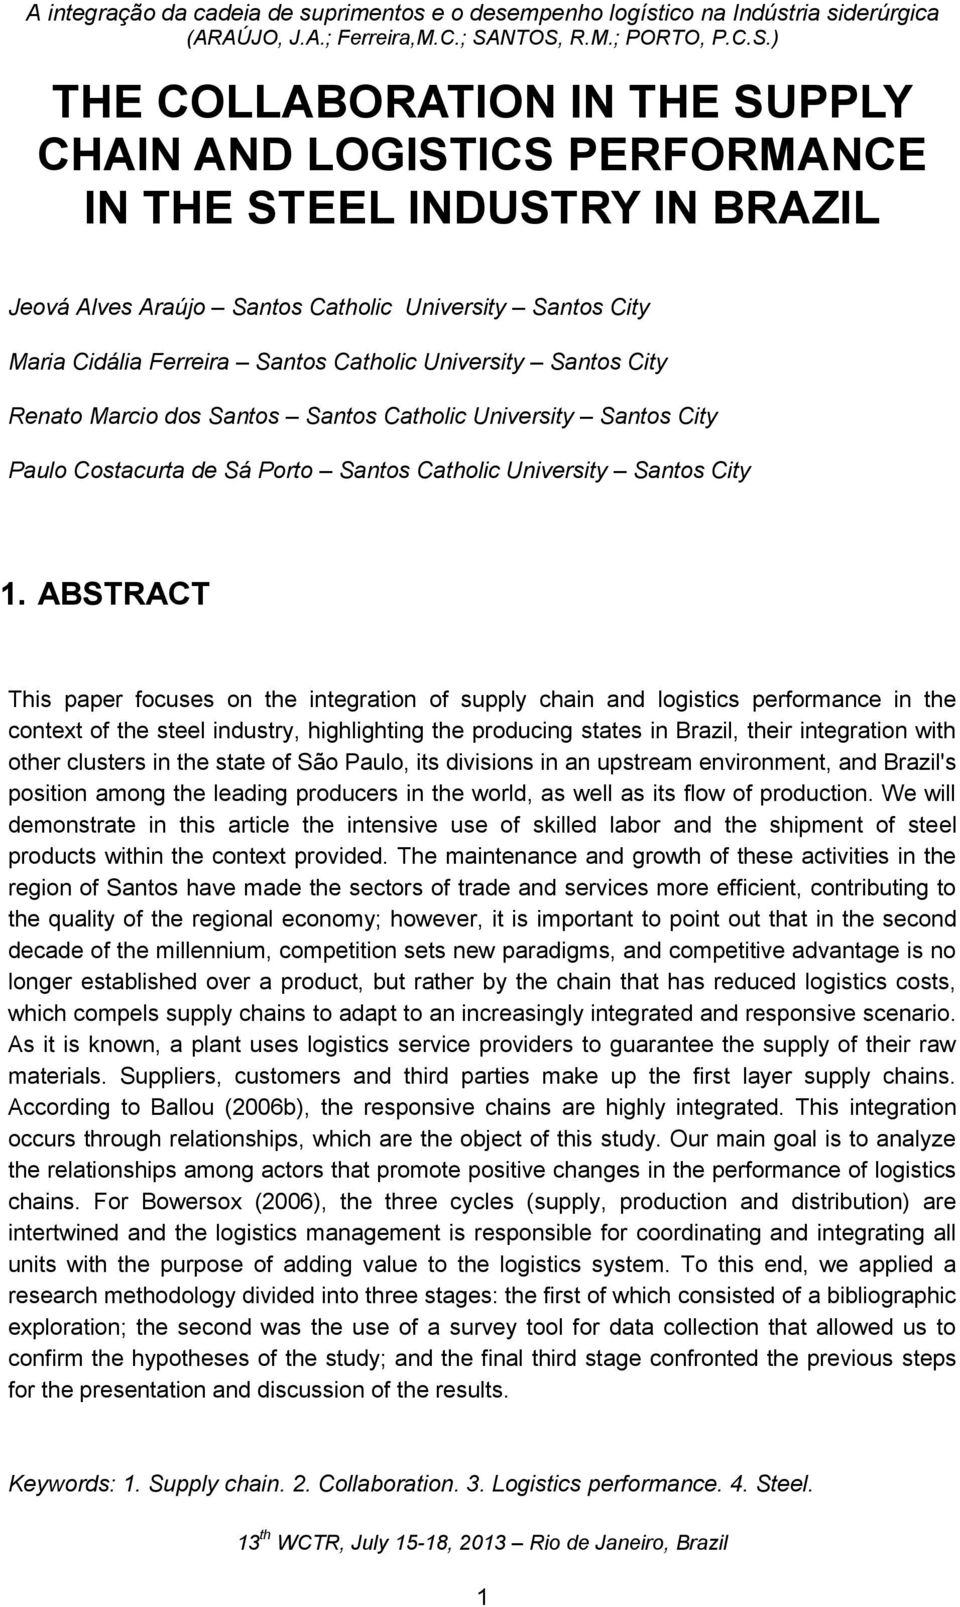 ABSTRACT This paper focuses on the integration of supply chain and logistics performance in the context of the steel industry, highlighting the producing states in Brazil, their integration with